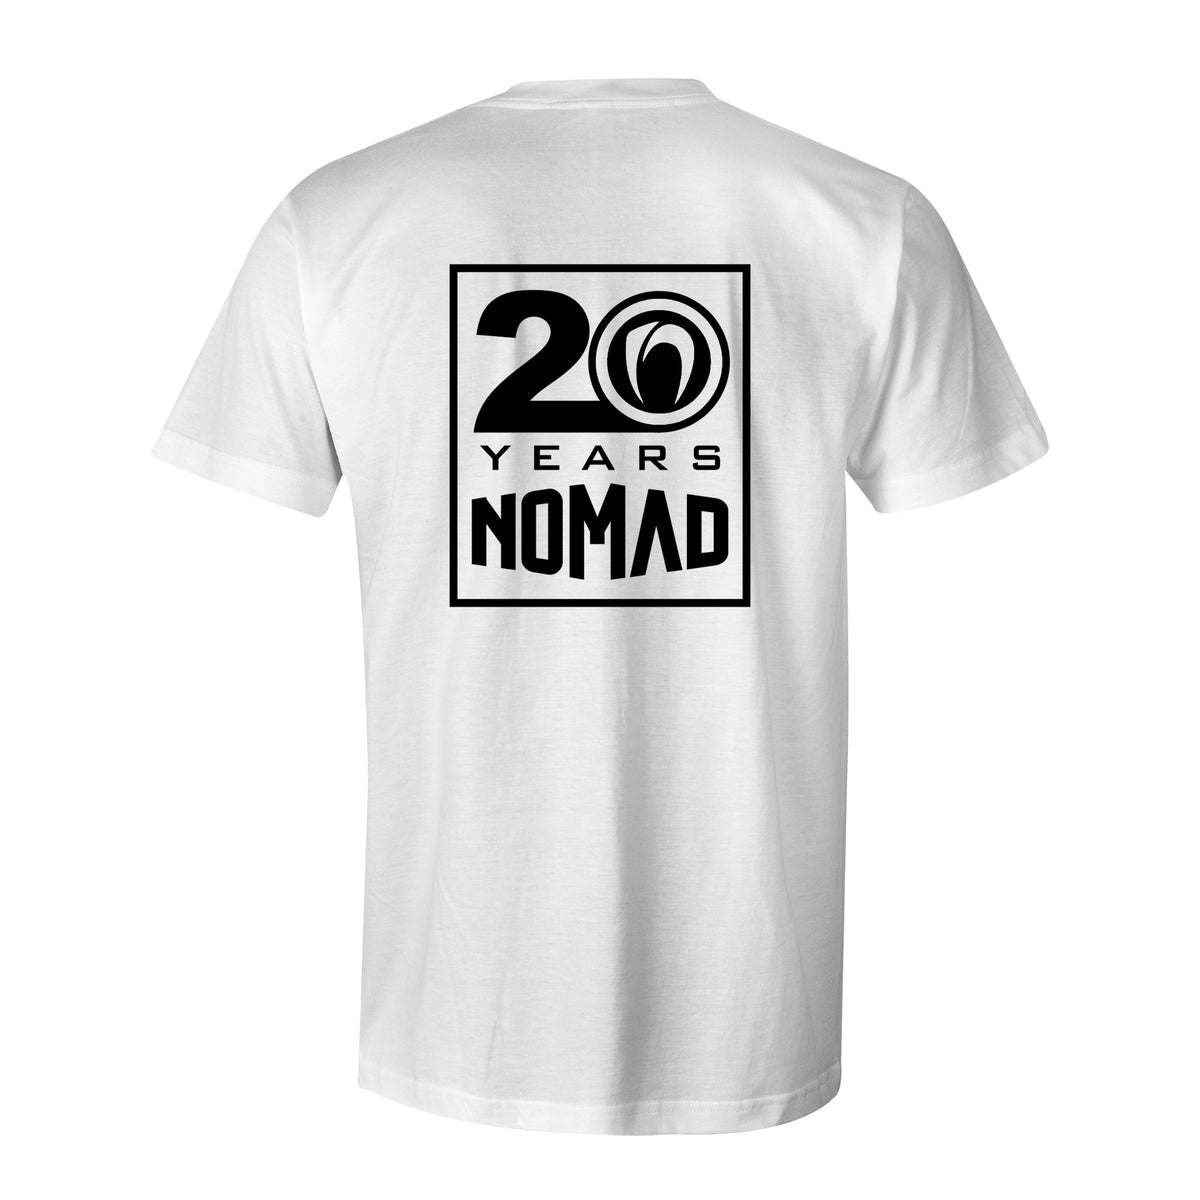 Nomad 20 Years T-Shirt